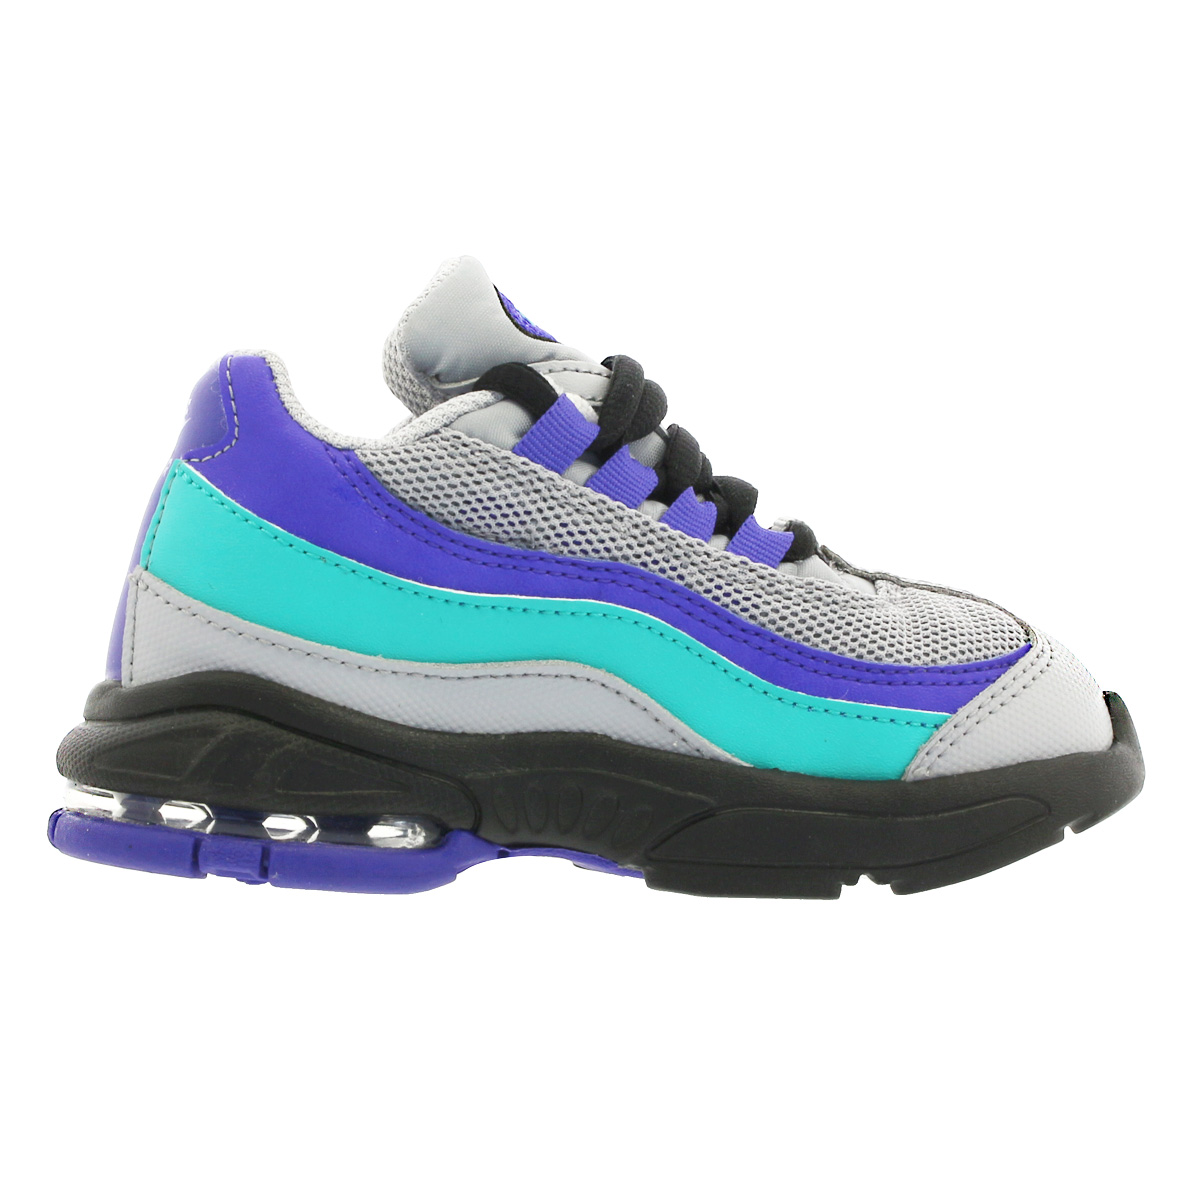 30678e82b9 LOWTEX BIG-SMALL SHOP: NIKE AIR MAX 95 TD Kie Ney AMAX 95 TD WOLF ...